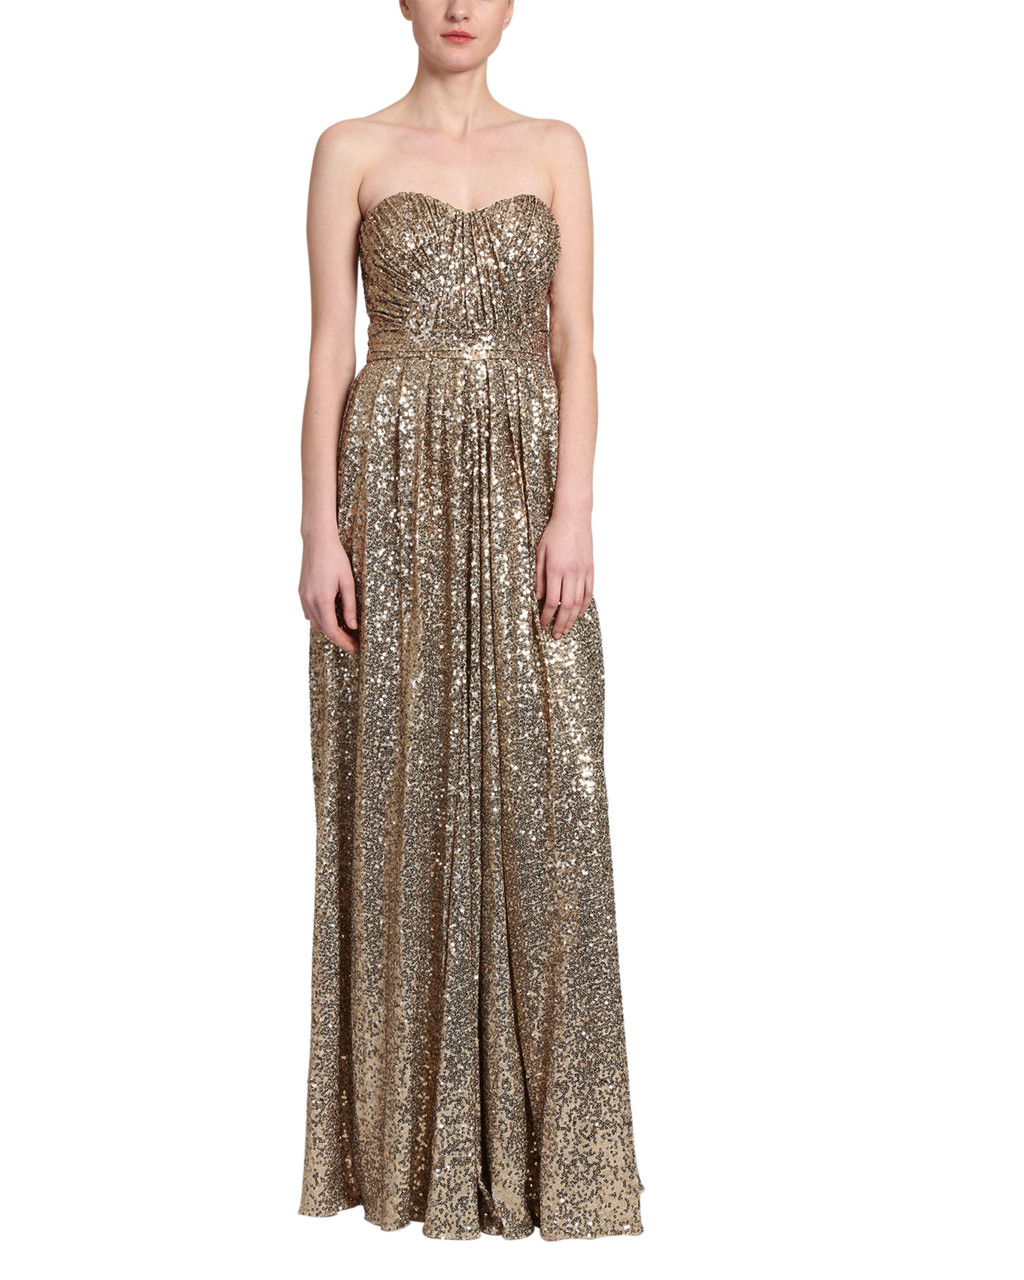 4a5208fefe4 Sequin draped gown by Badgley Mischka